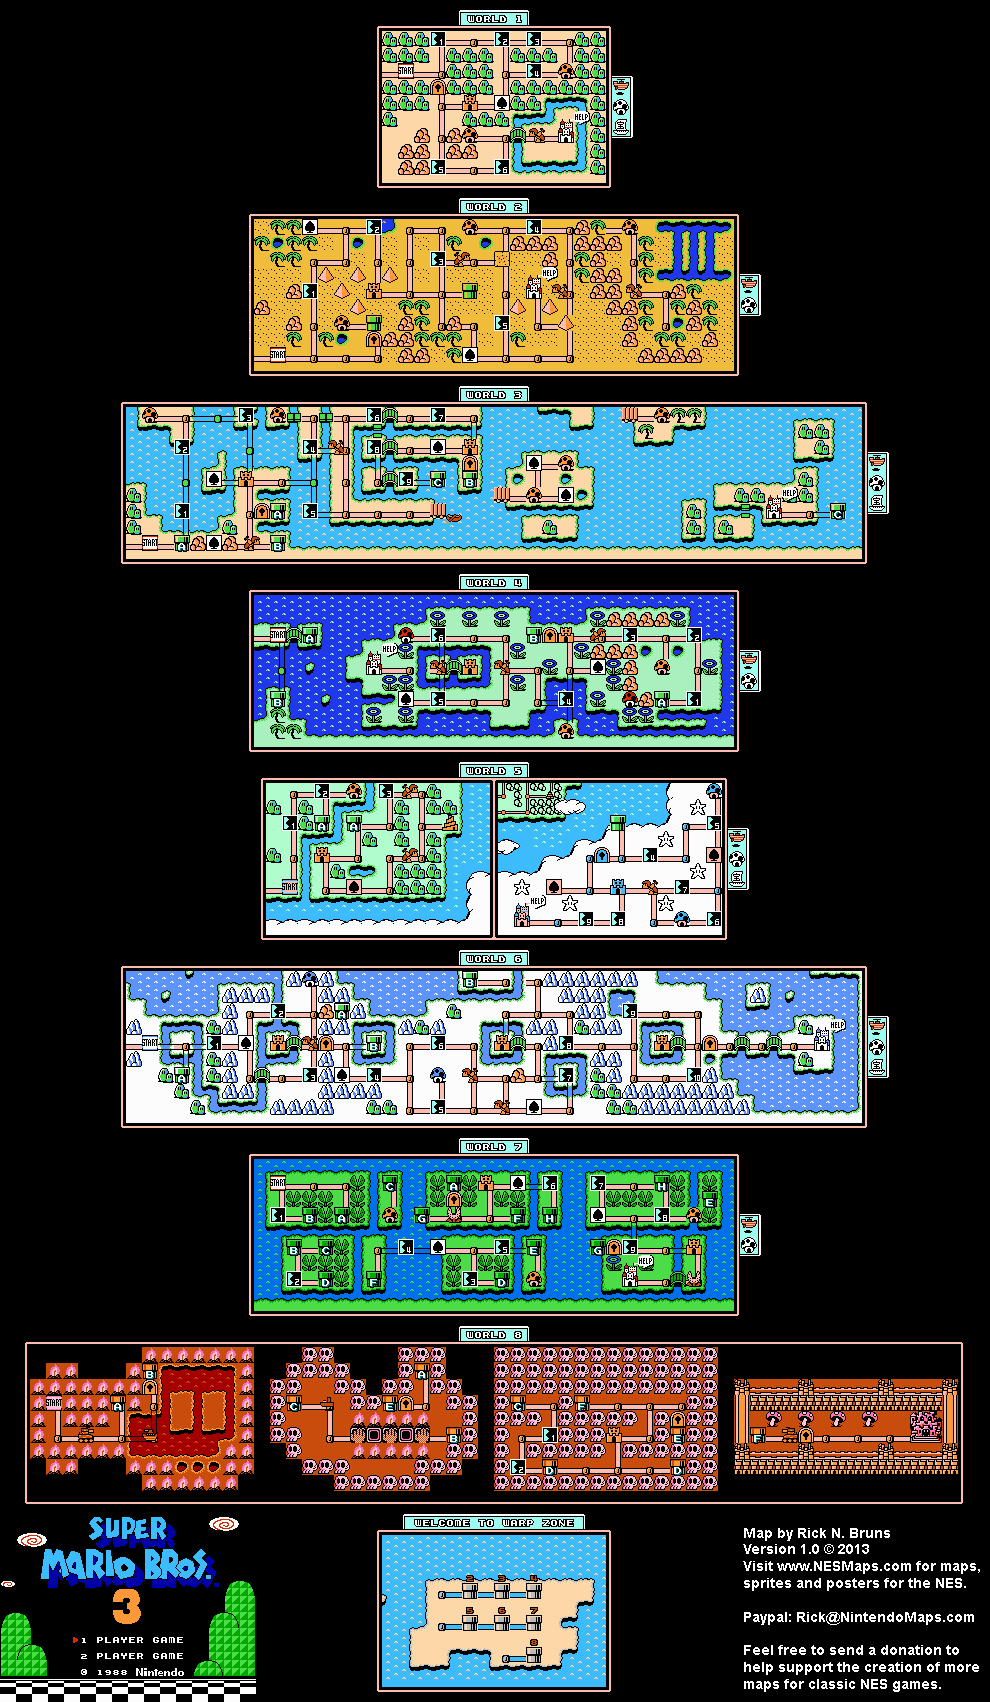 Super mario bros 3 overworld maps mario pinterest videojuegos super mario bros 3 overworld maps gumiabroncs Gallery